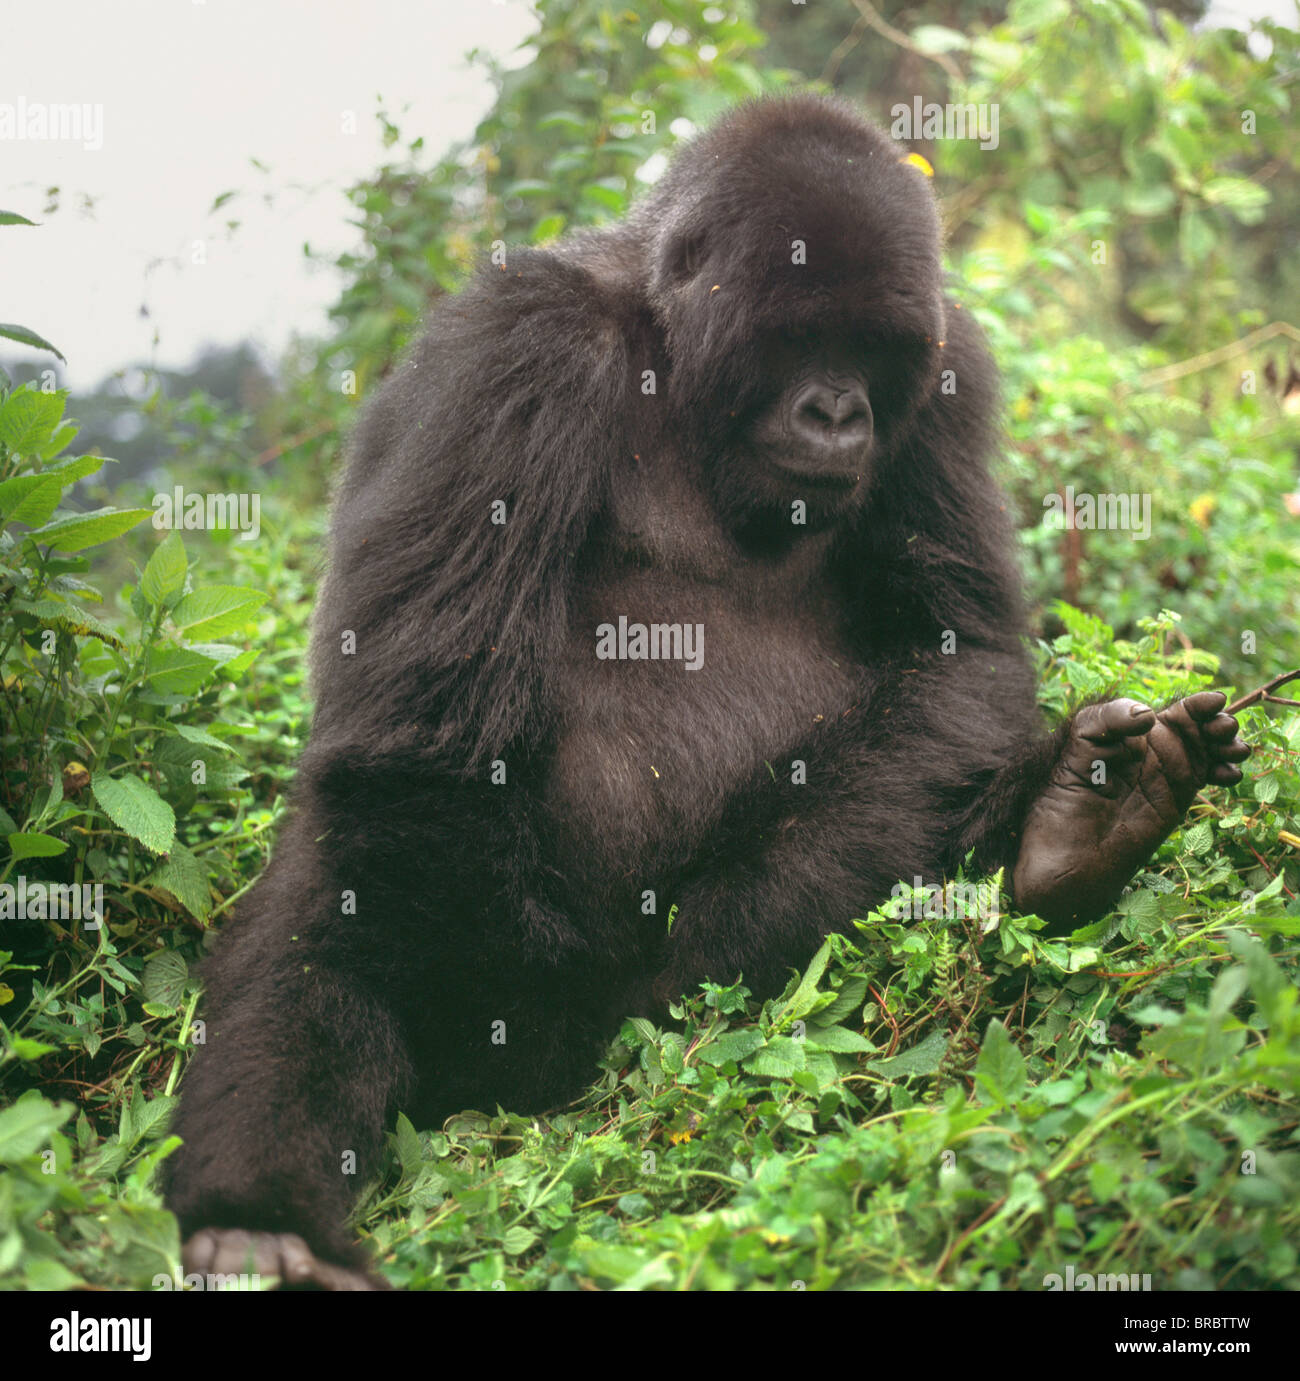 Mountain Gorilla (Gorilla gorilla beringei) young male, Virunga Volcanoes, Rwanda - Stock Image